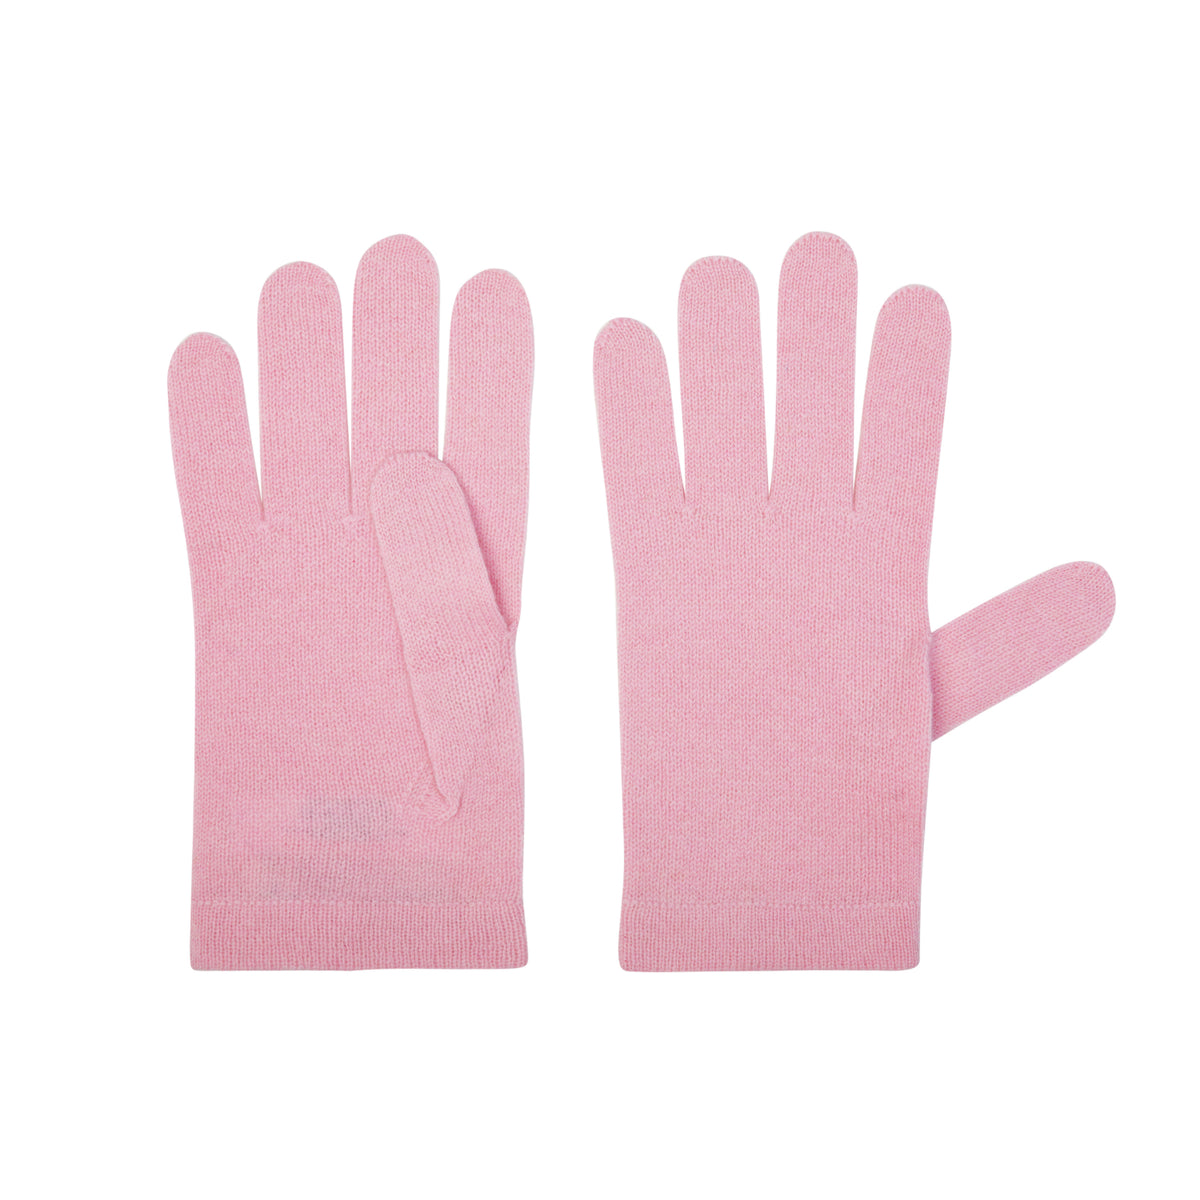 Ladies Pale Pink Cashmere Gloves | Shop now at The Cashmere Choice | London